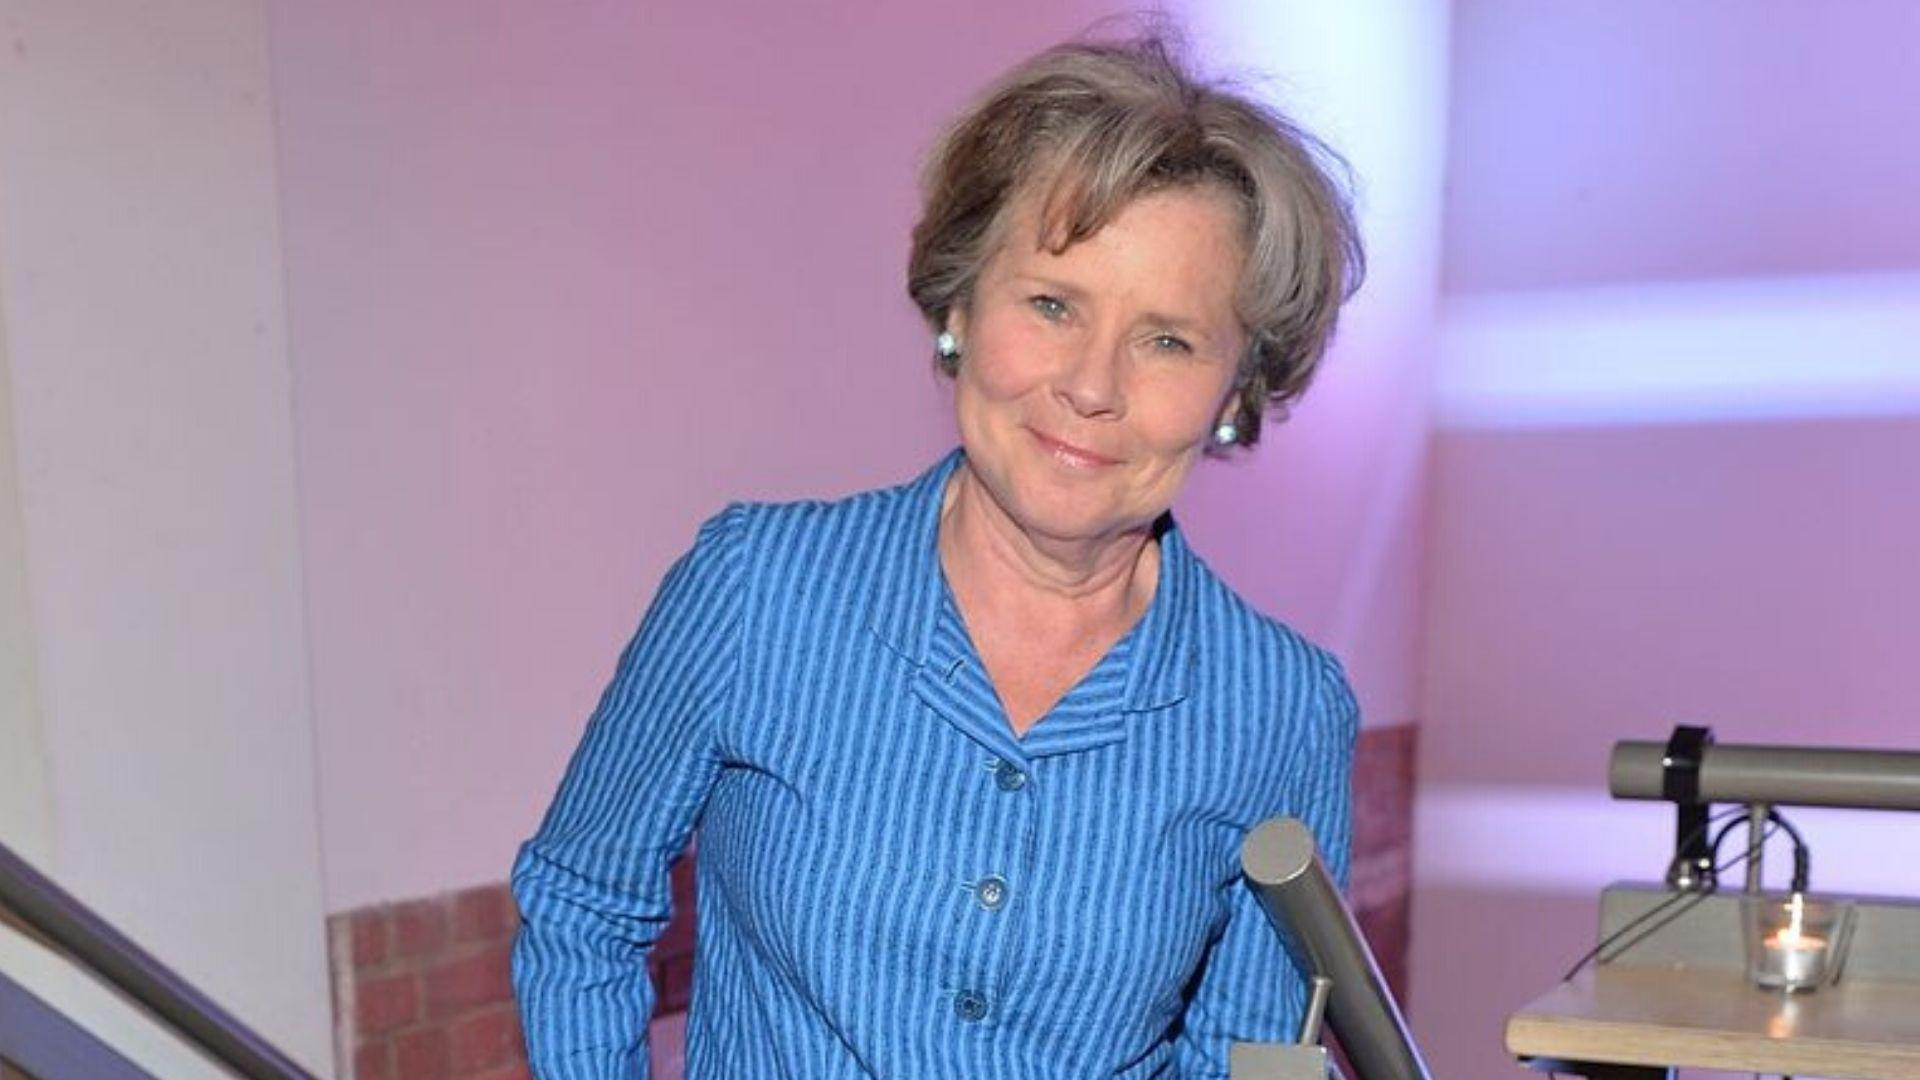 Imelda Staunton Could Replace Olivia Colman As The Queen